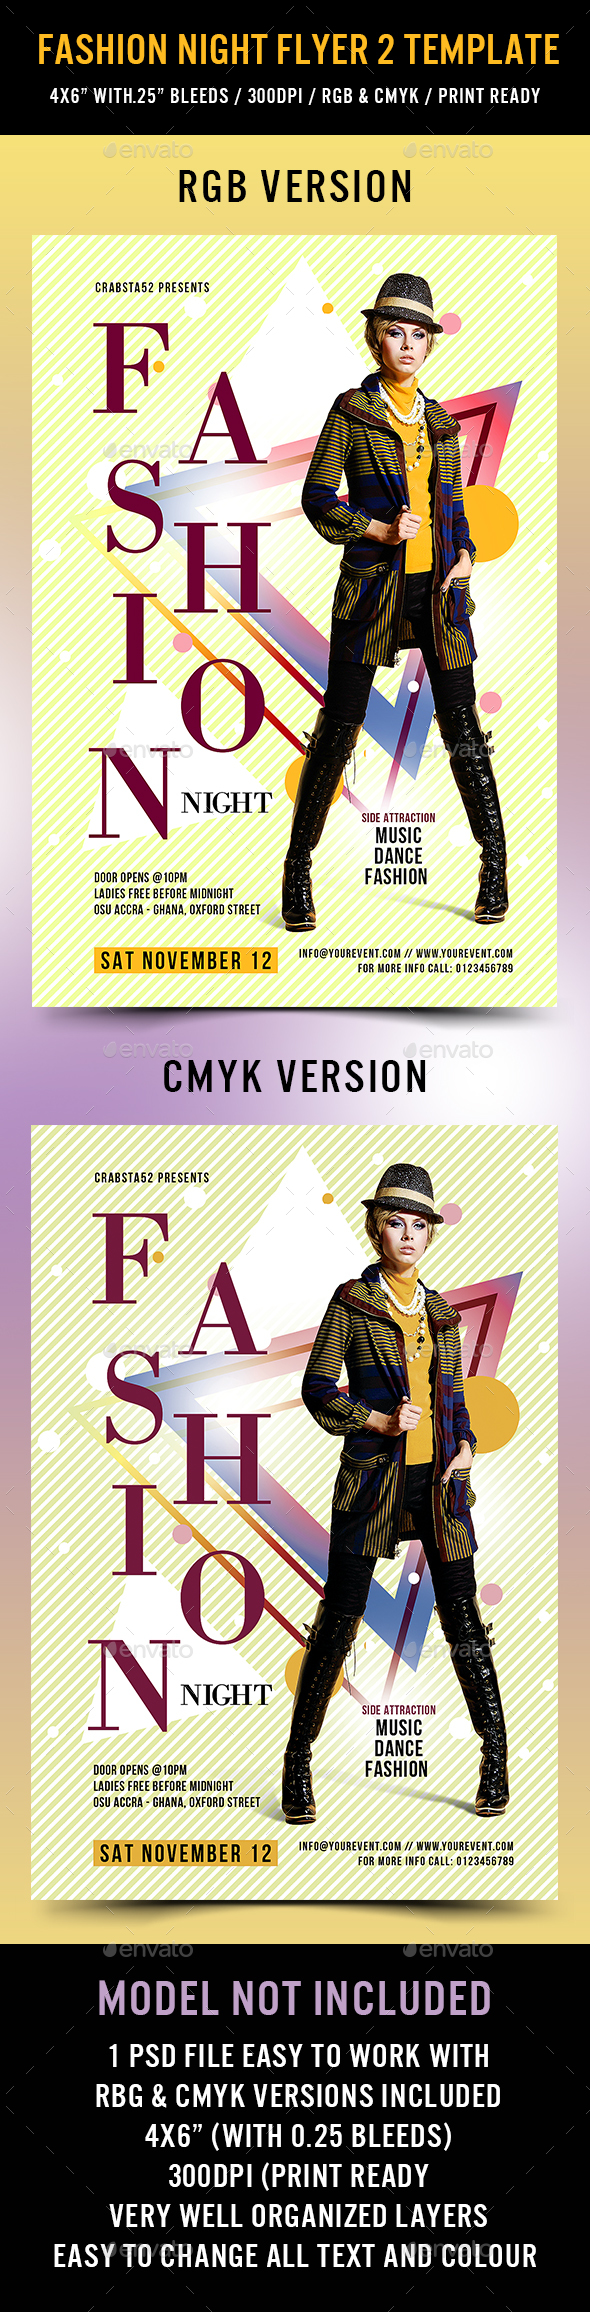 Fashion Night flyer Template 2 - Flyers Print Templates